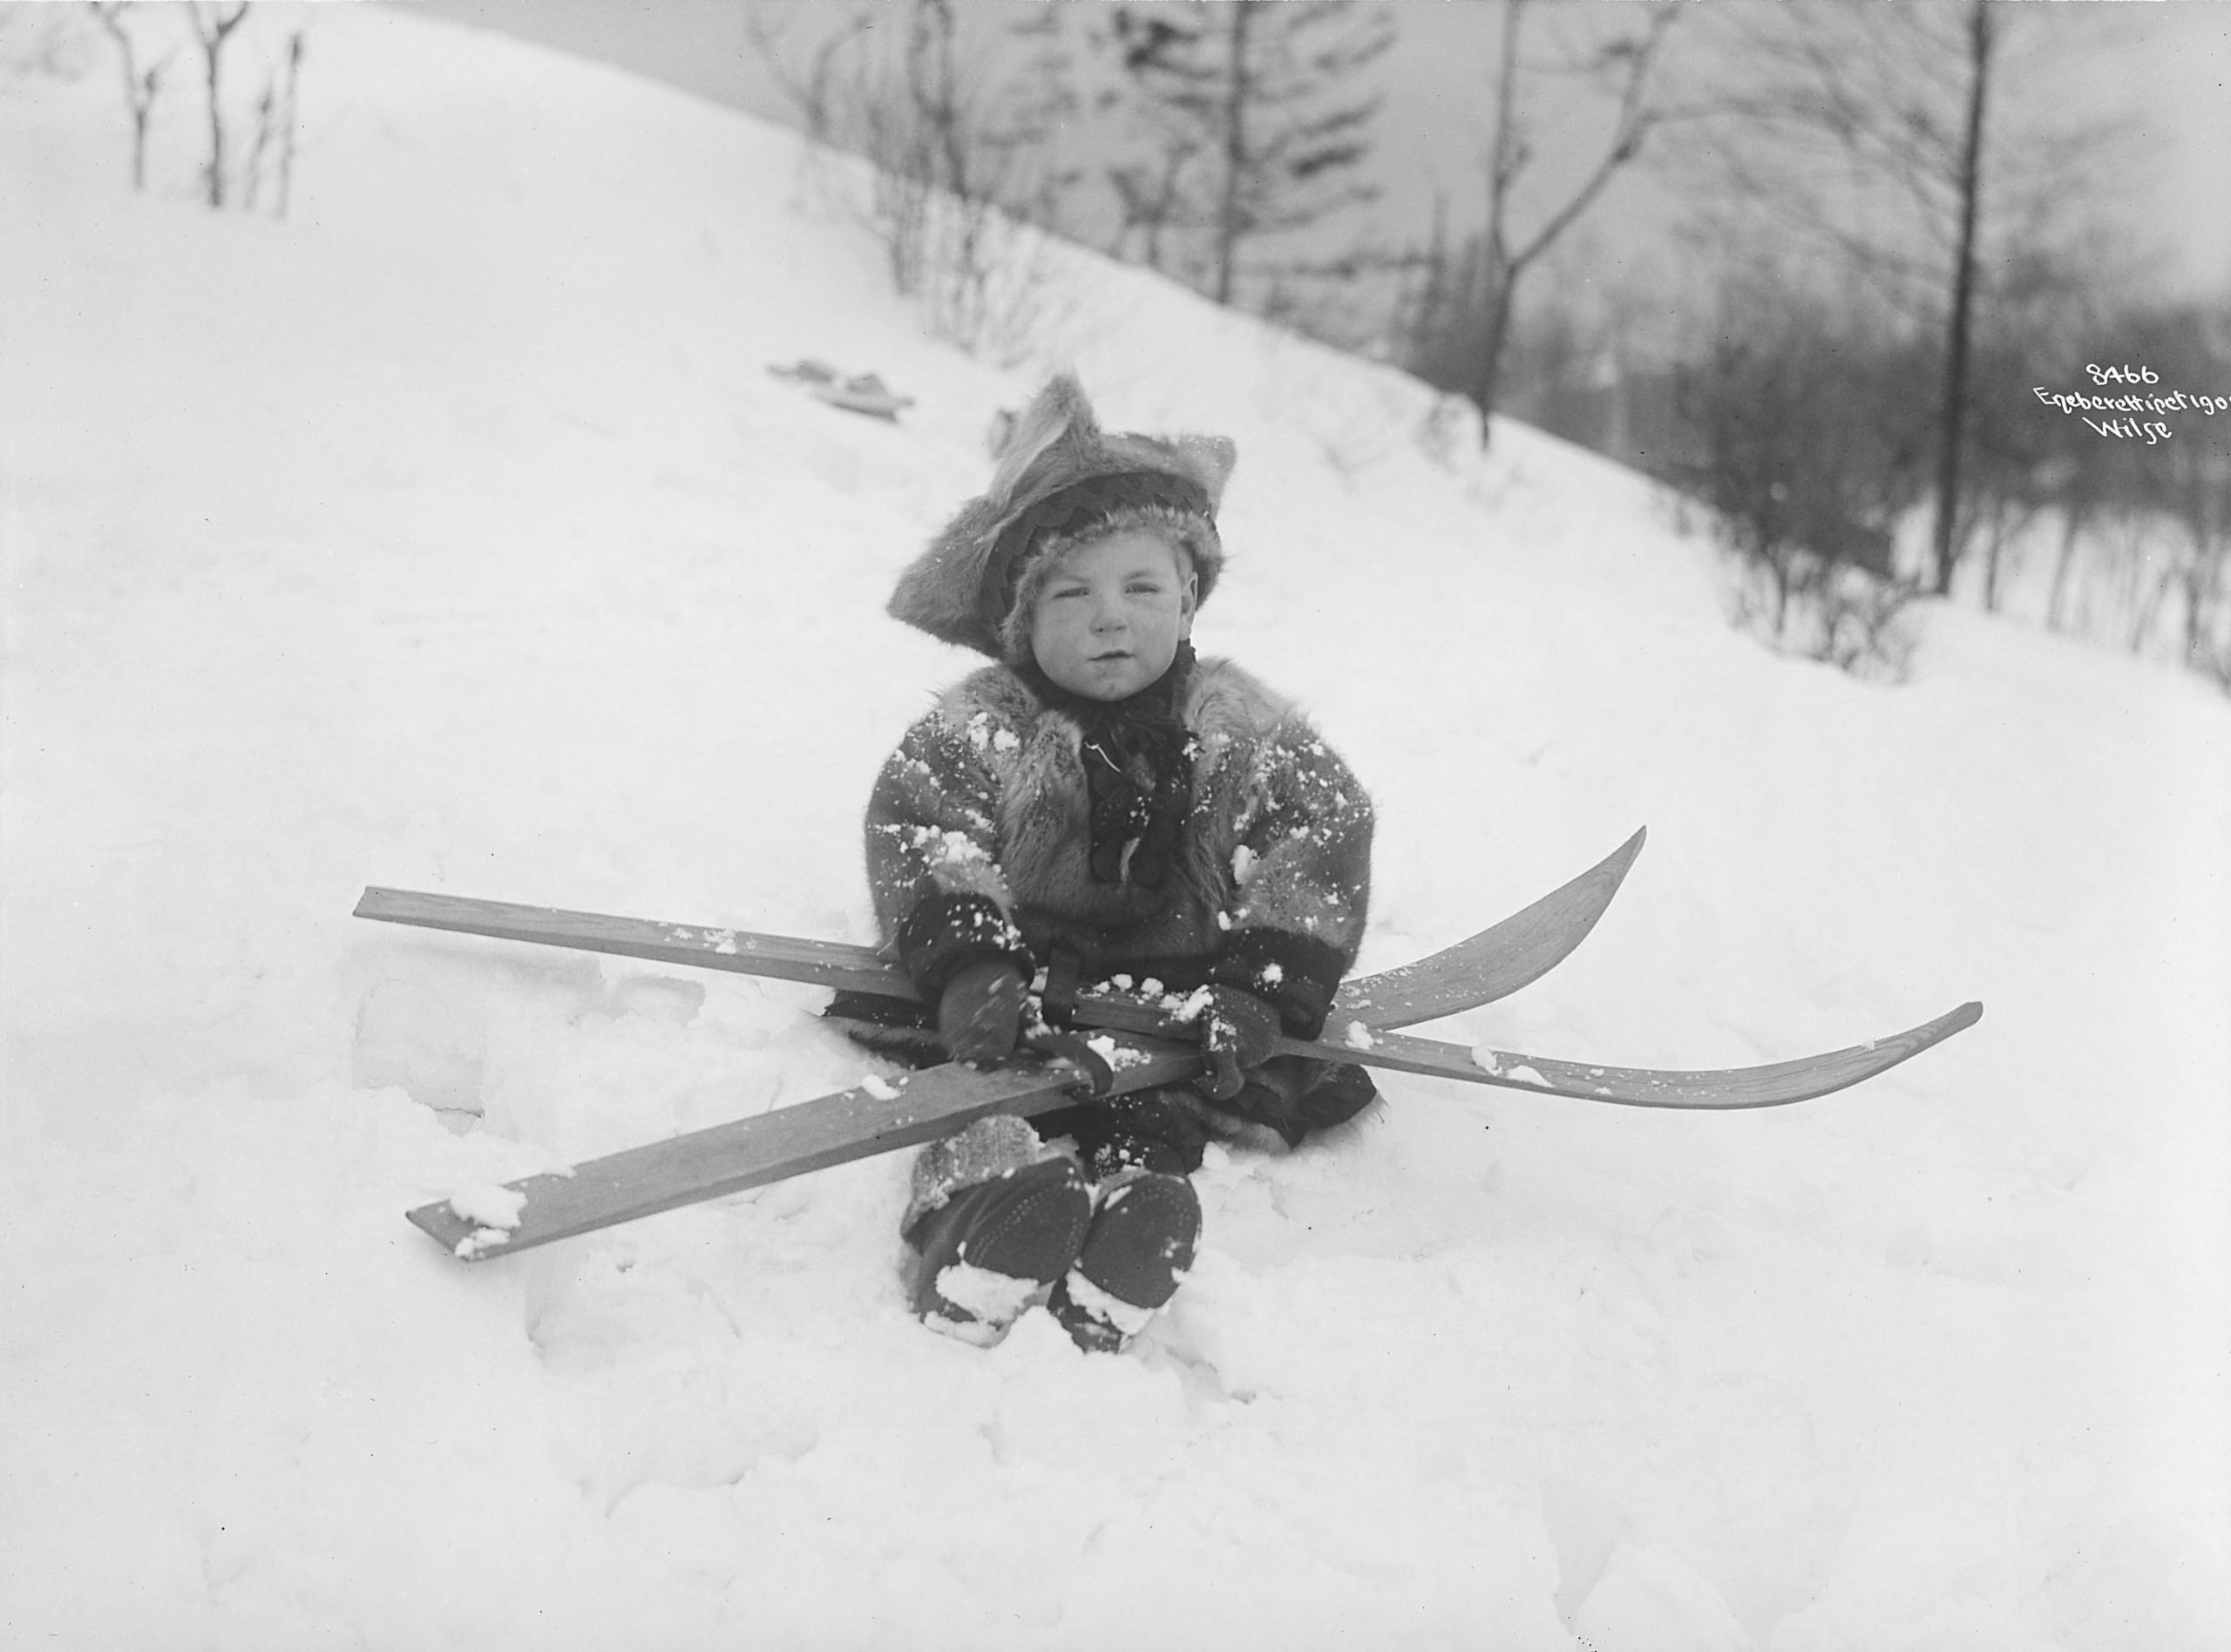 It is said that all Norwegians are born with skis attached to their feet. | Photo: Anders Beer Wilse - Norsk Folkemuseum cc pdm.